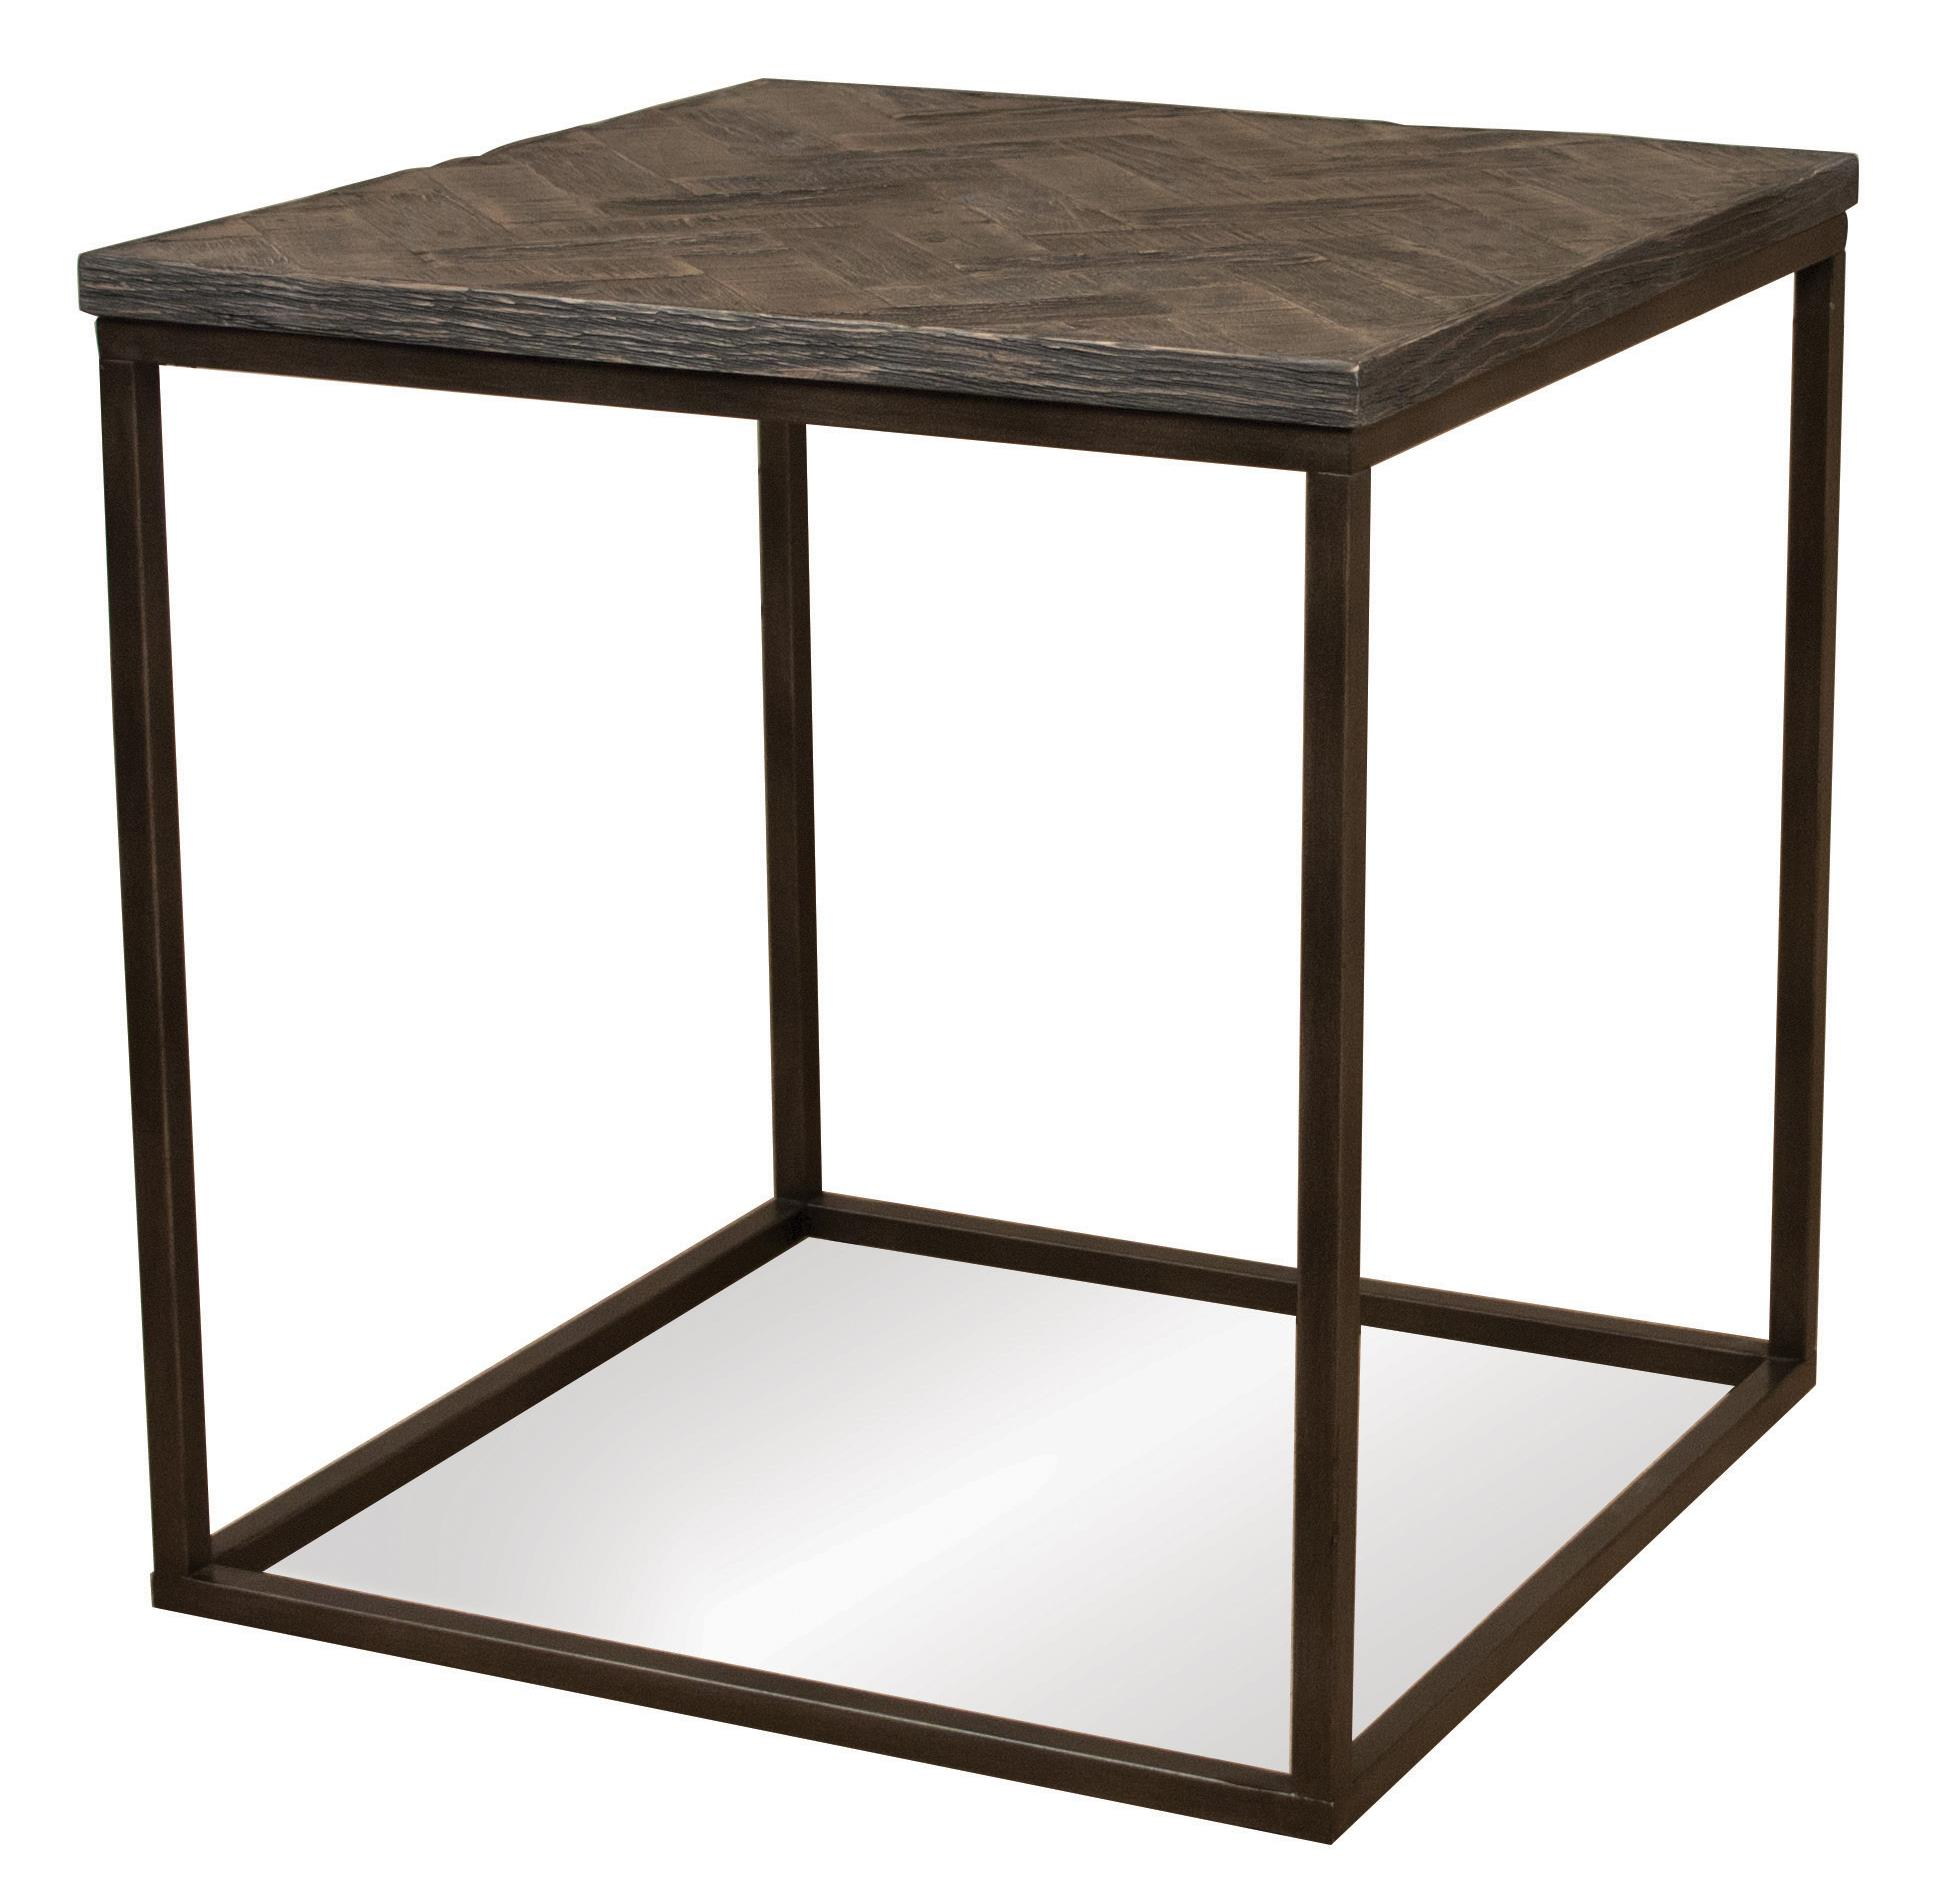 Riverside Furniture Chevron Square Side Table - Item Number: 73109